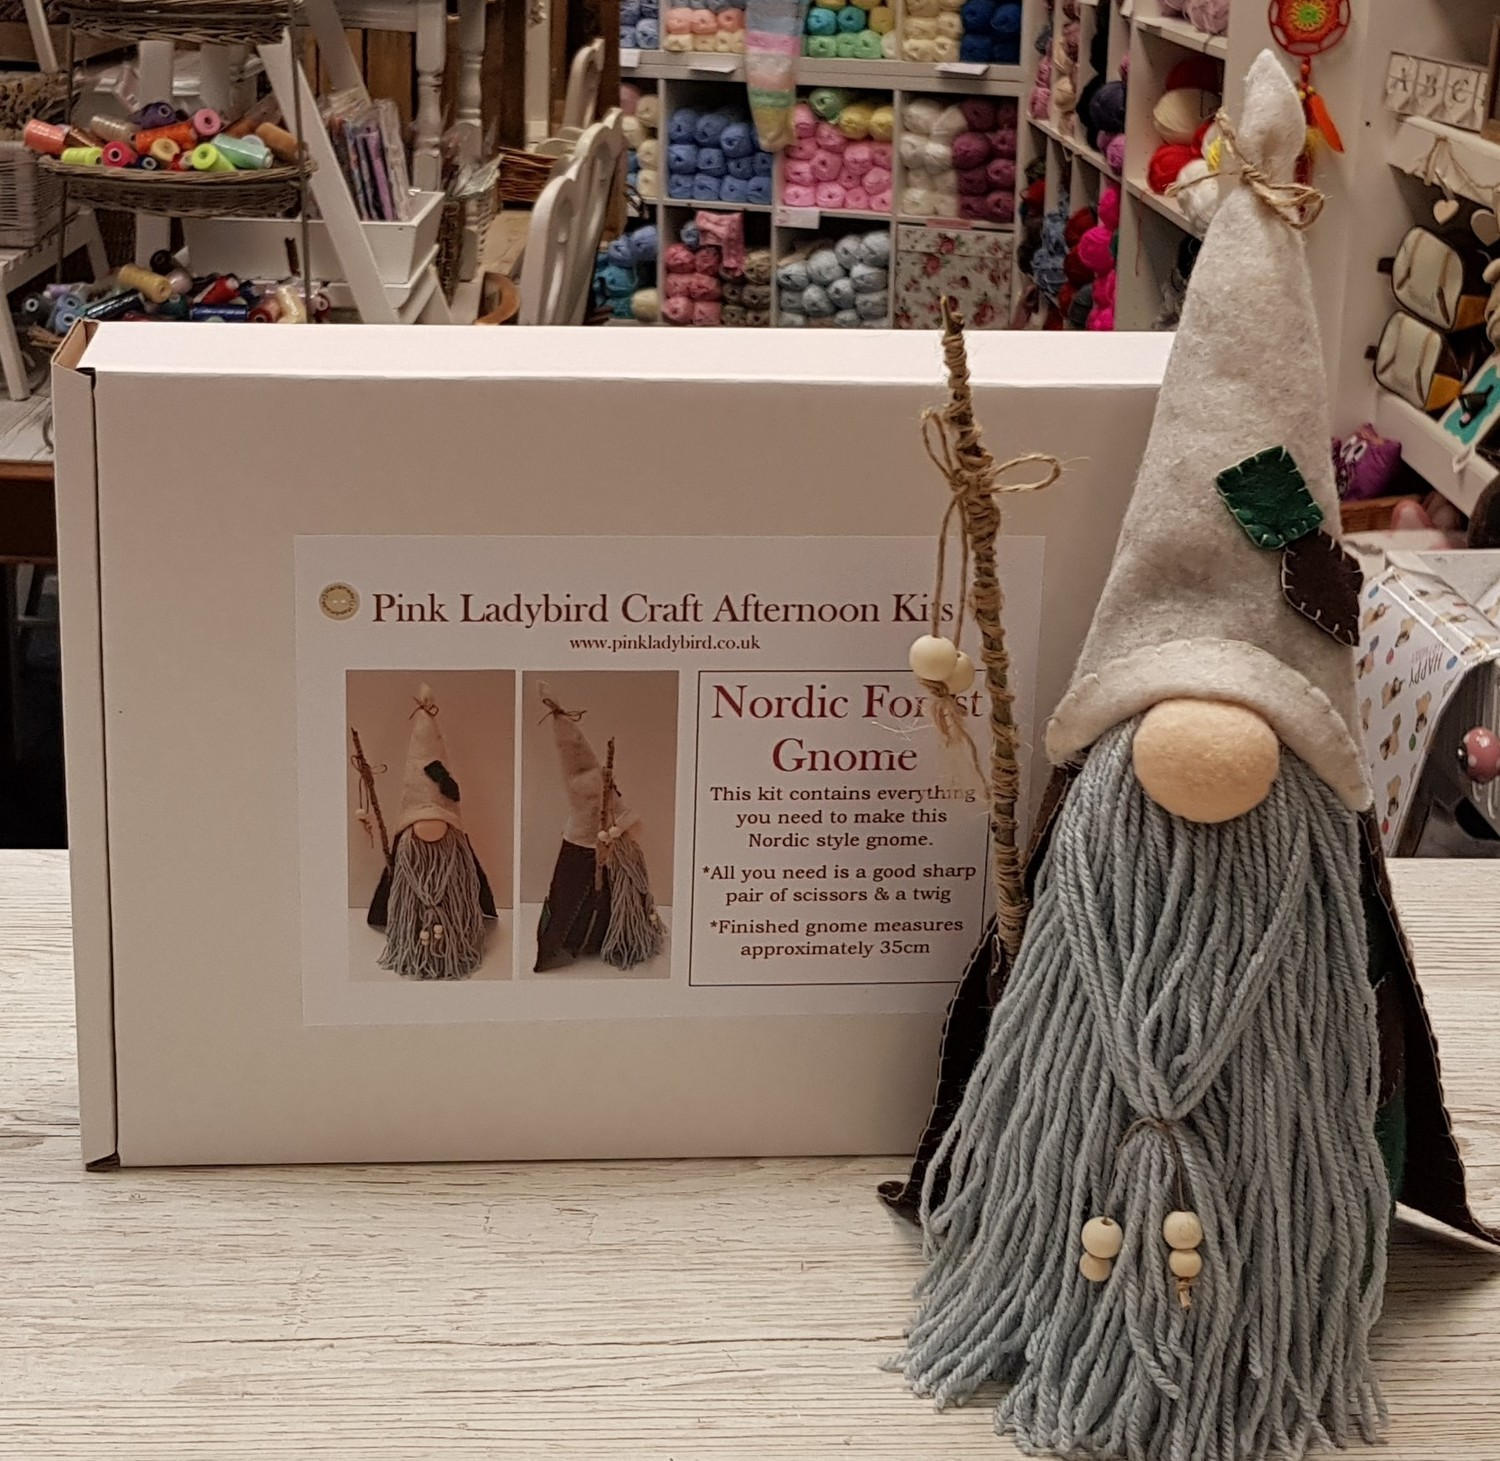 Craft Afternoon Kit - Nordic Forest Gnome